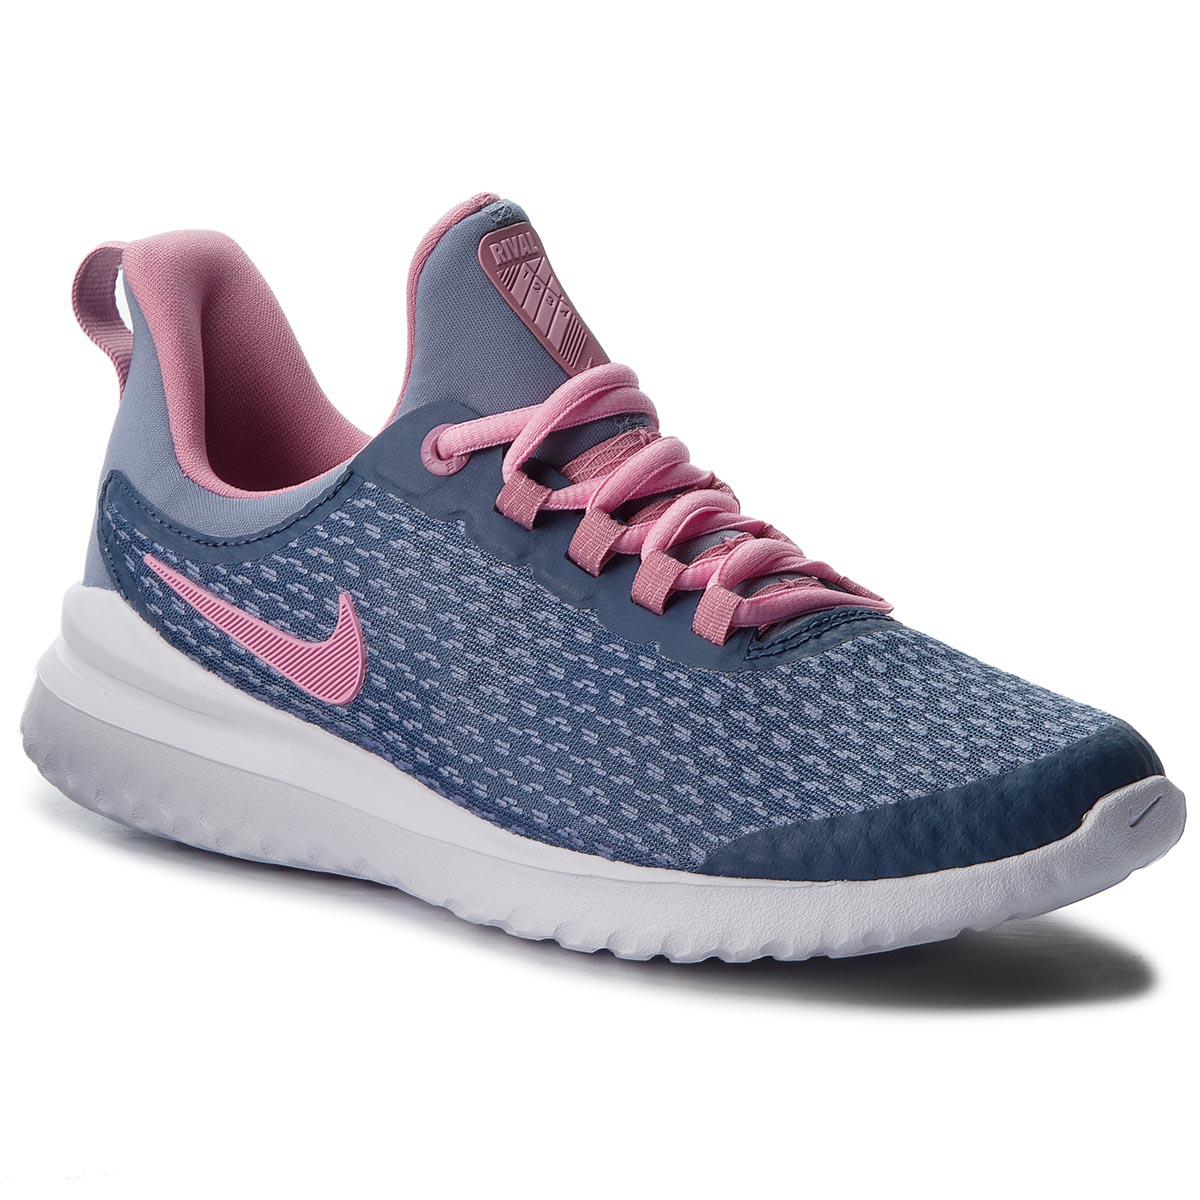 separation shoes c0765 d8bd2 Skor NIKE - Renev Rival (GS) AH3474 400 Diffused Blue Pink Ashen